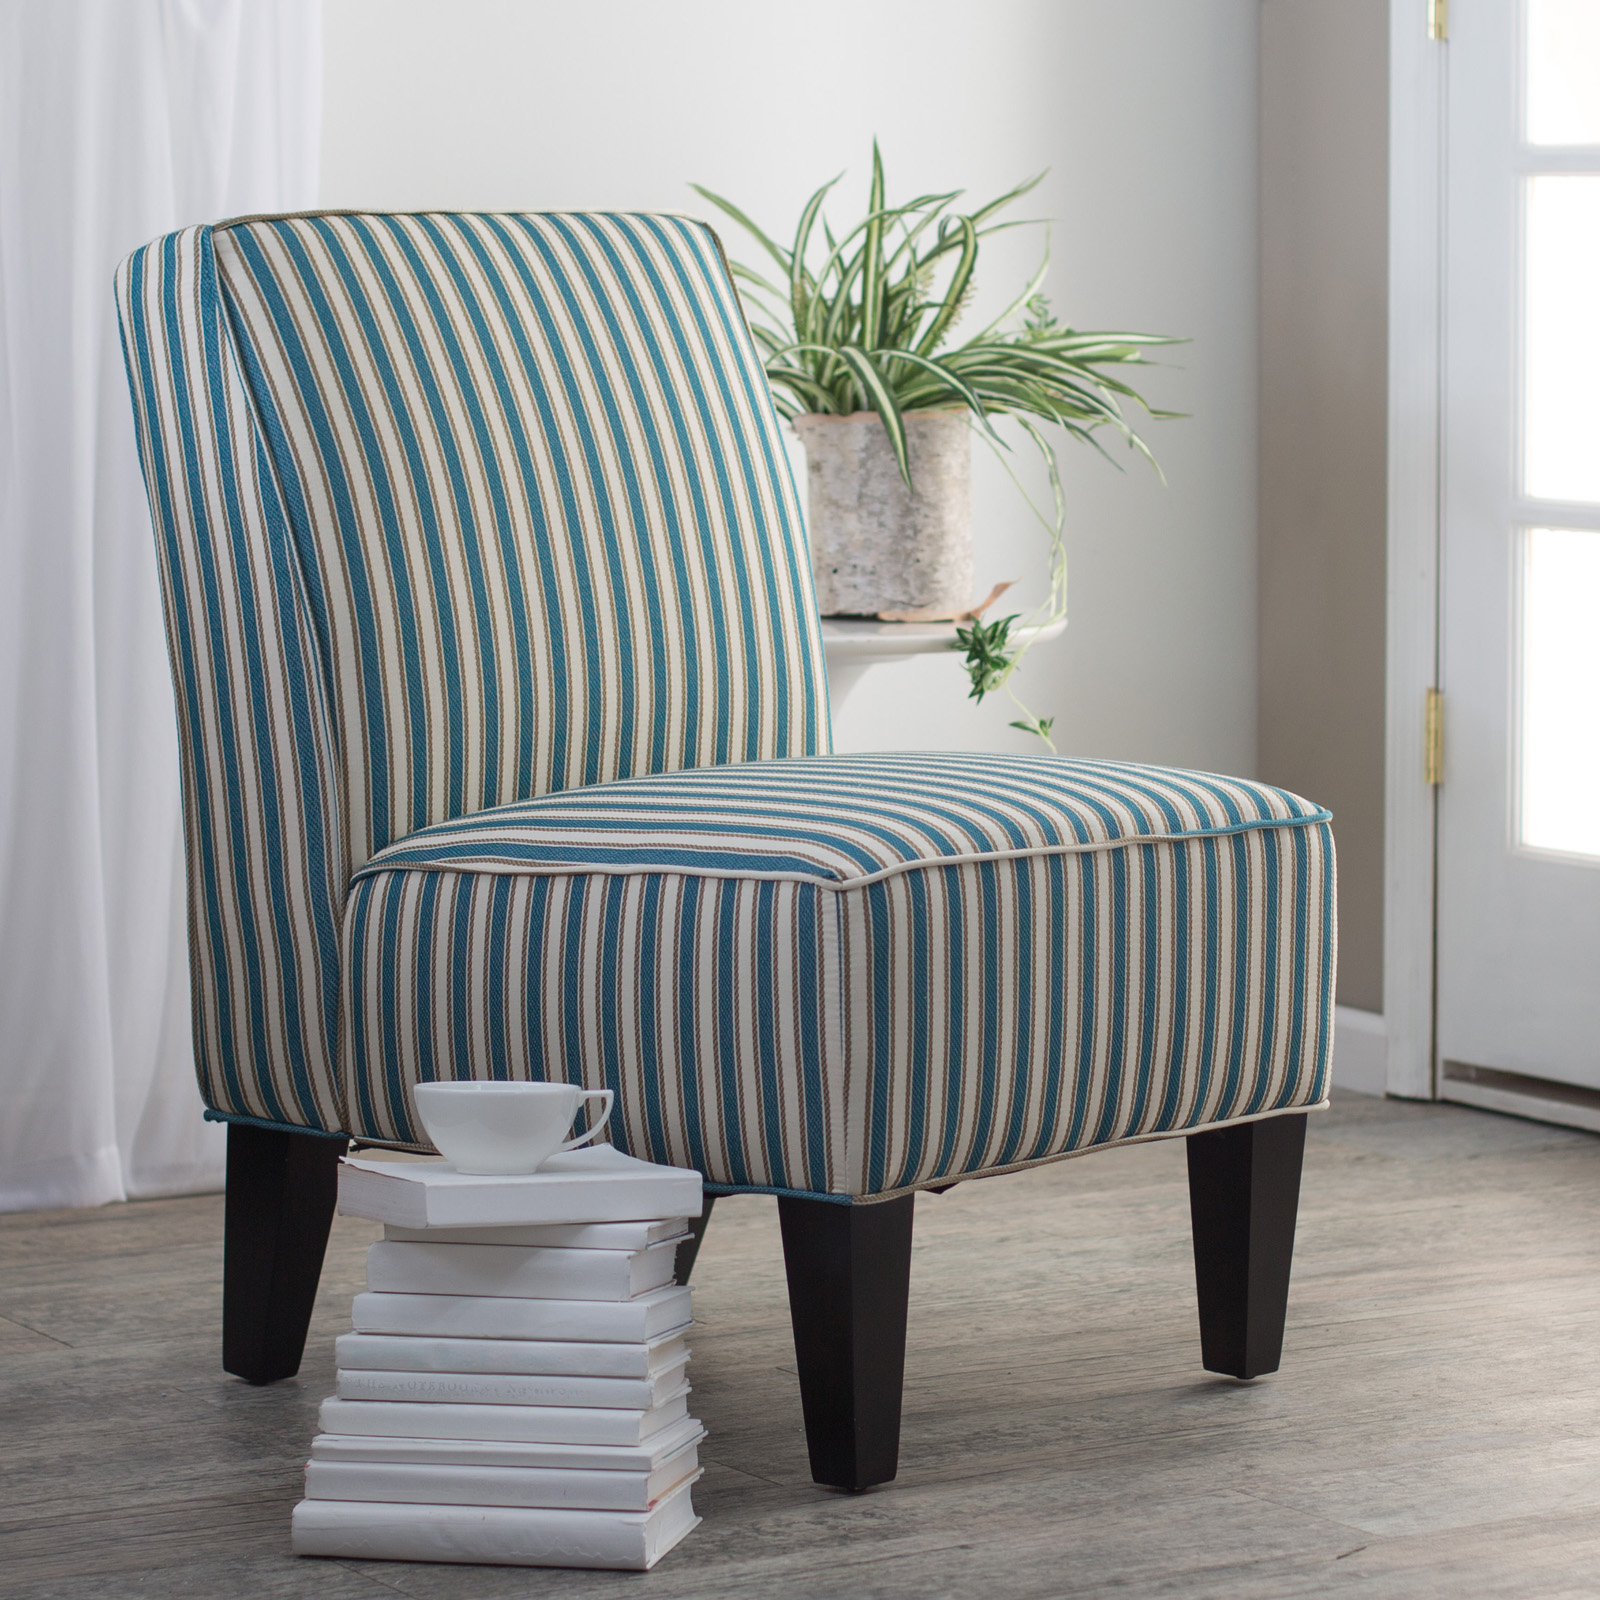 Angelo Home Dover Chair Cottage Stripe Turquoise Blue